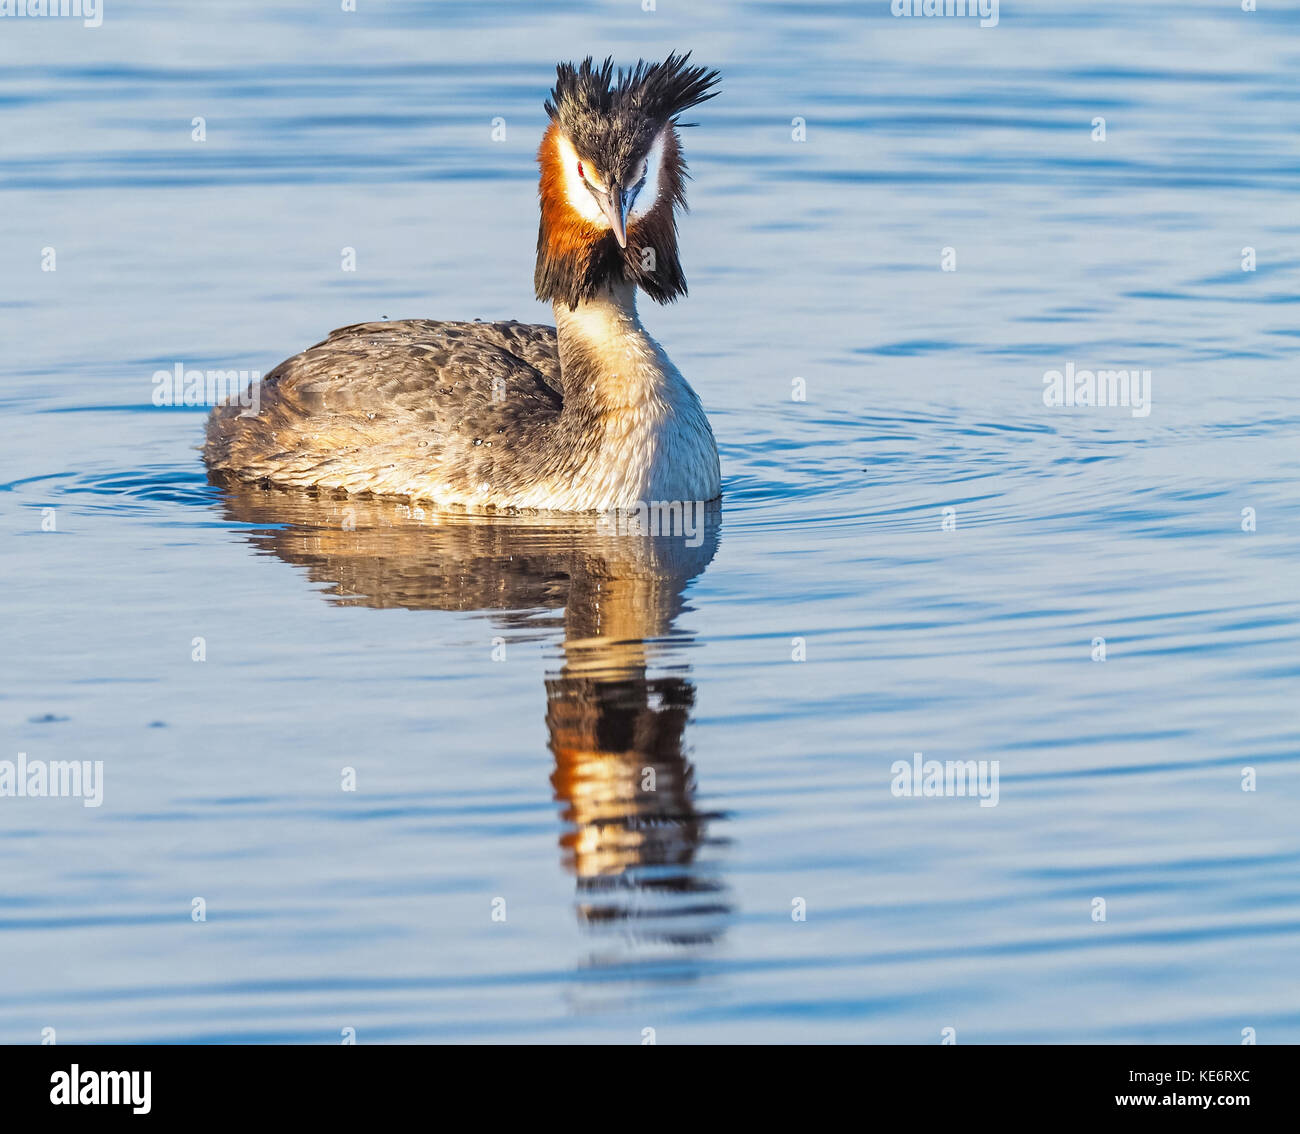 The Great Crested Grebe (Podiceps cristatus) is a member of the grebe family of water birds and is found in Europe, Stock Photo